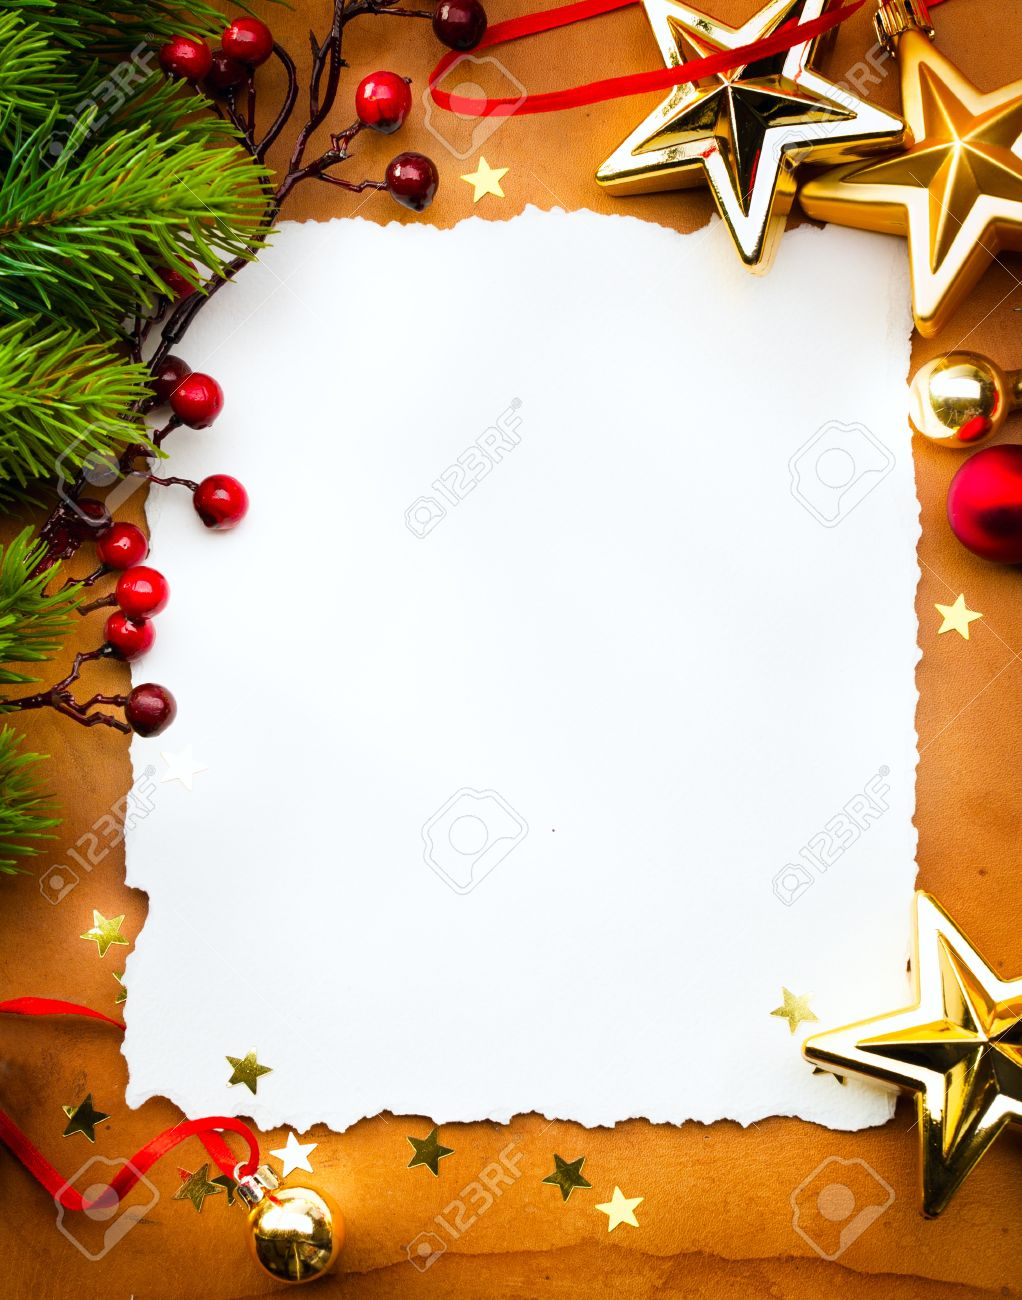 Christmas Card Background.Design A Christmas Greeting Card With White Paper On A Red Background